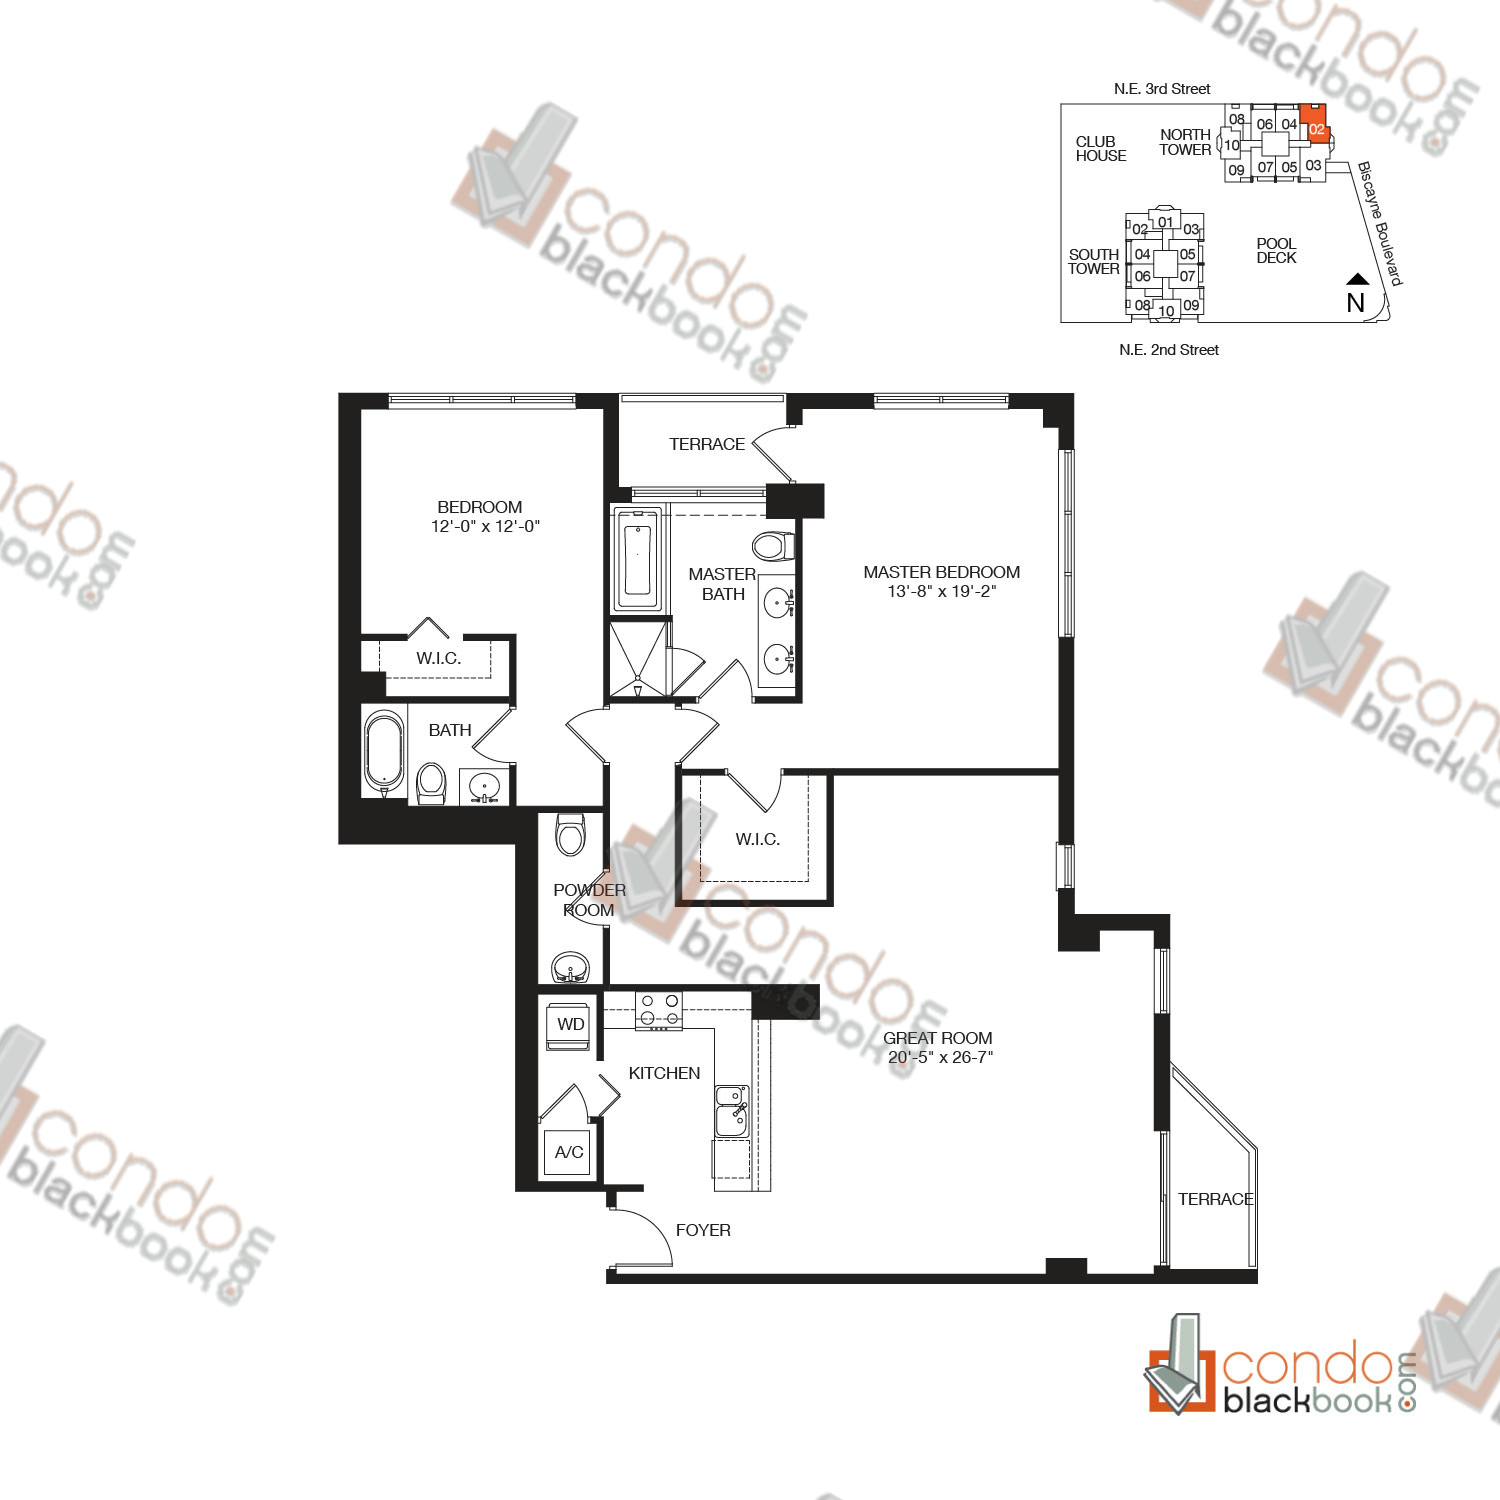 Floor plan for Vizcayne Downtown Miami Miami, model RESIDENCE 12, line 02, 2/2.5 bedrooms, 1,603 sq ft